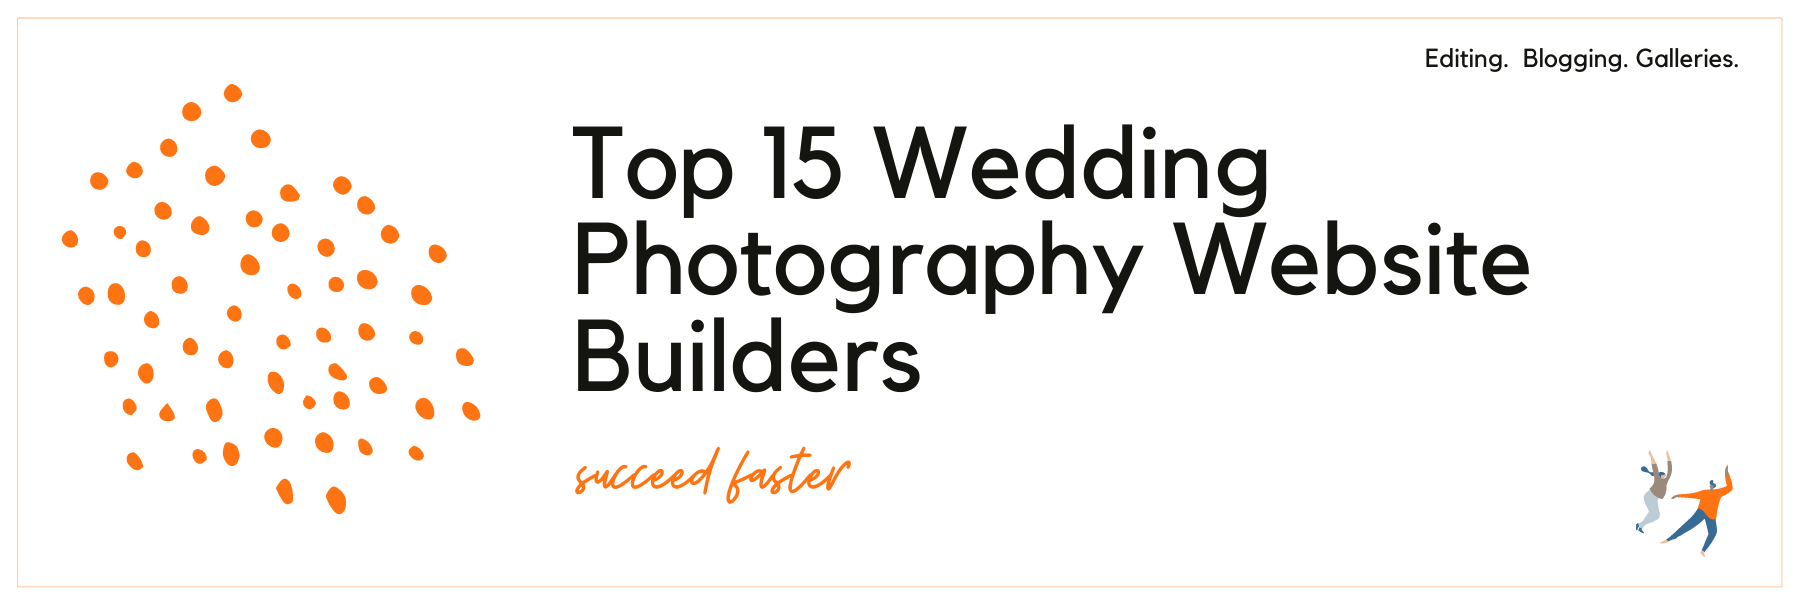 Top 15 Wedding Photography Website Builders